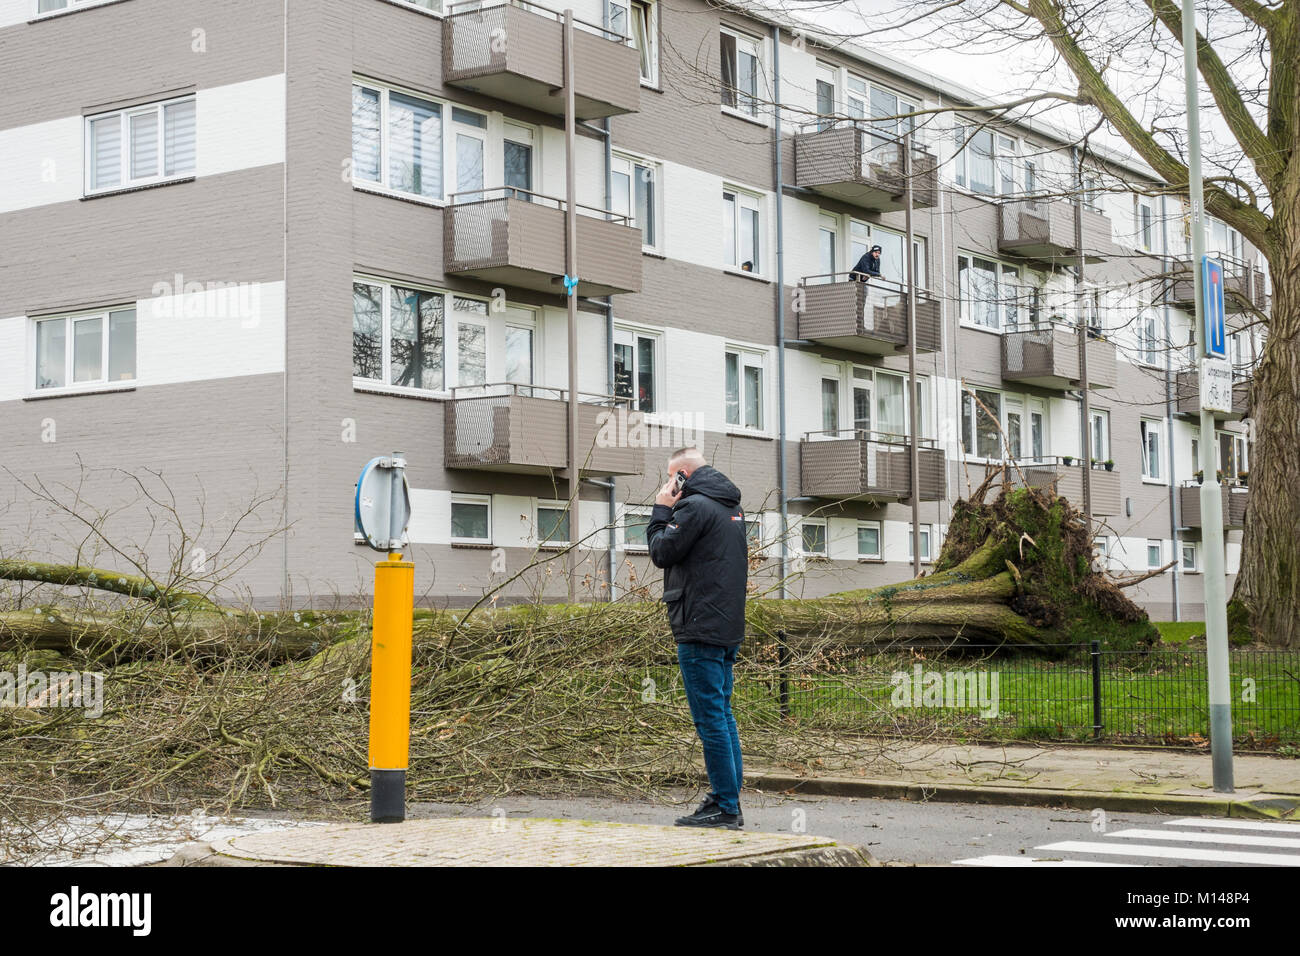 After heavy storm fallen tree blocking road, Sittard, Limburg, Netherlands. Stock Photo